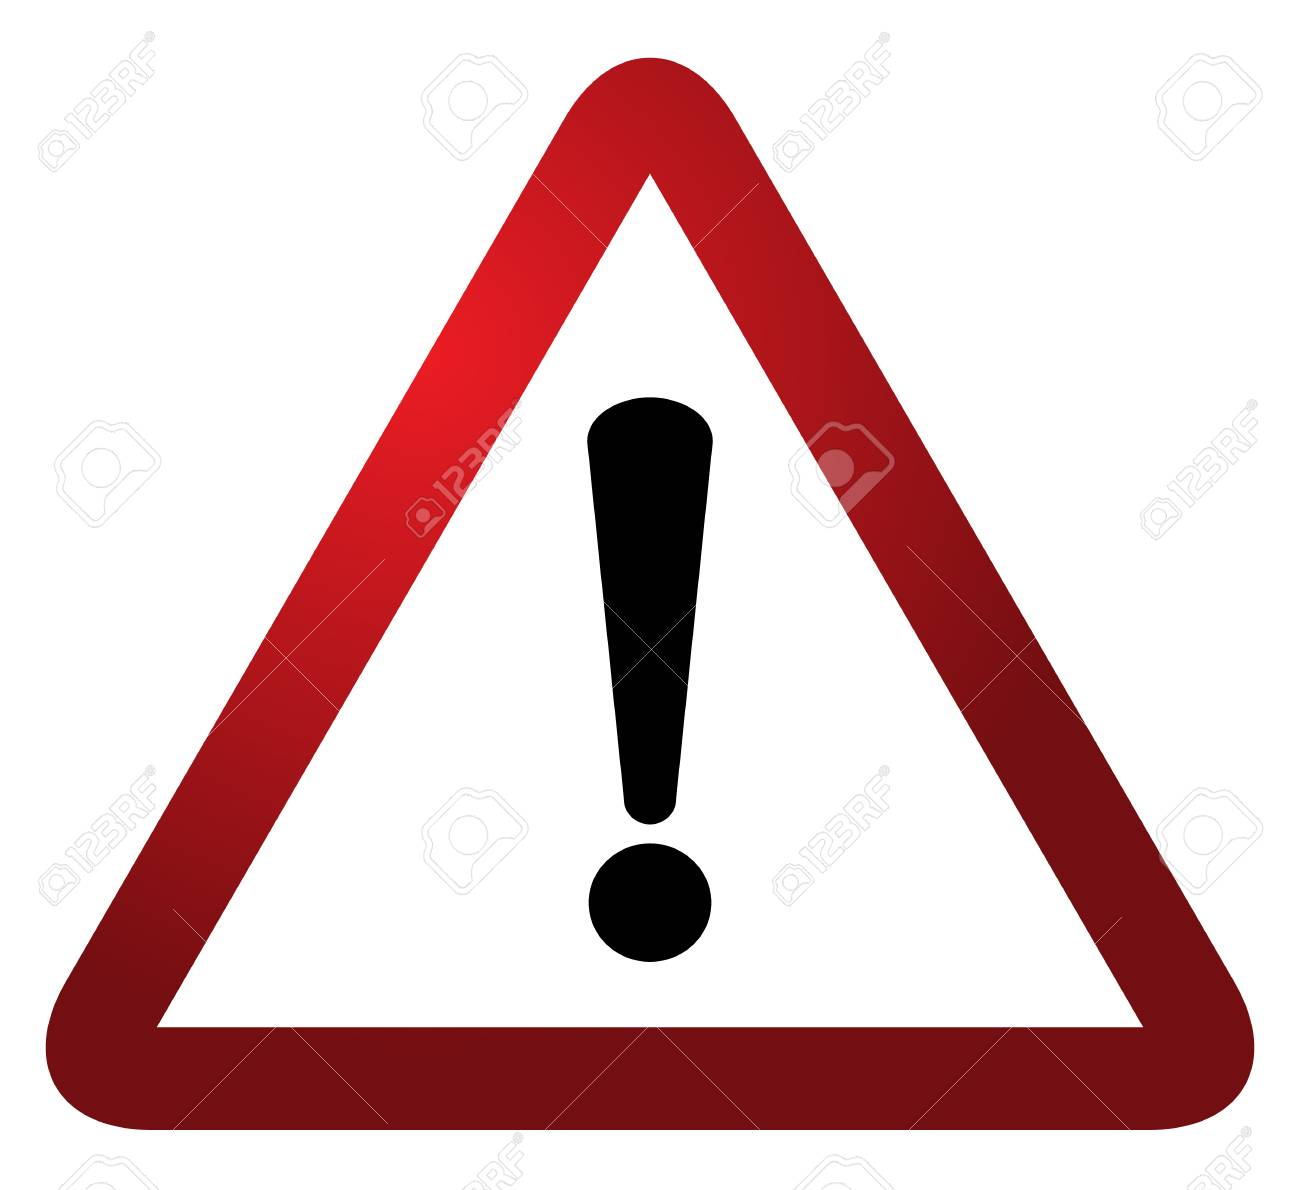 Red triangle warning alert sign vector illustration  Caution